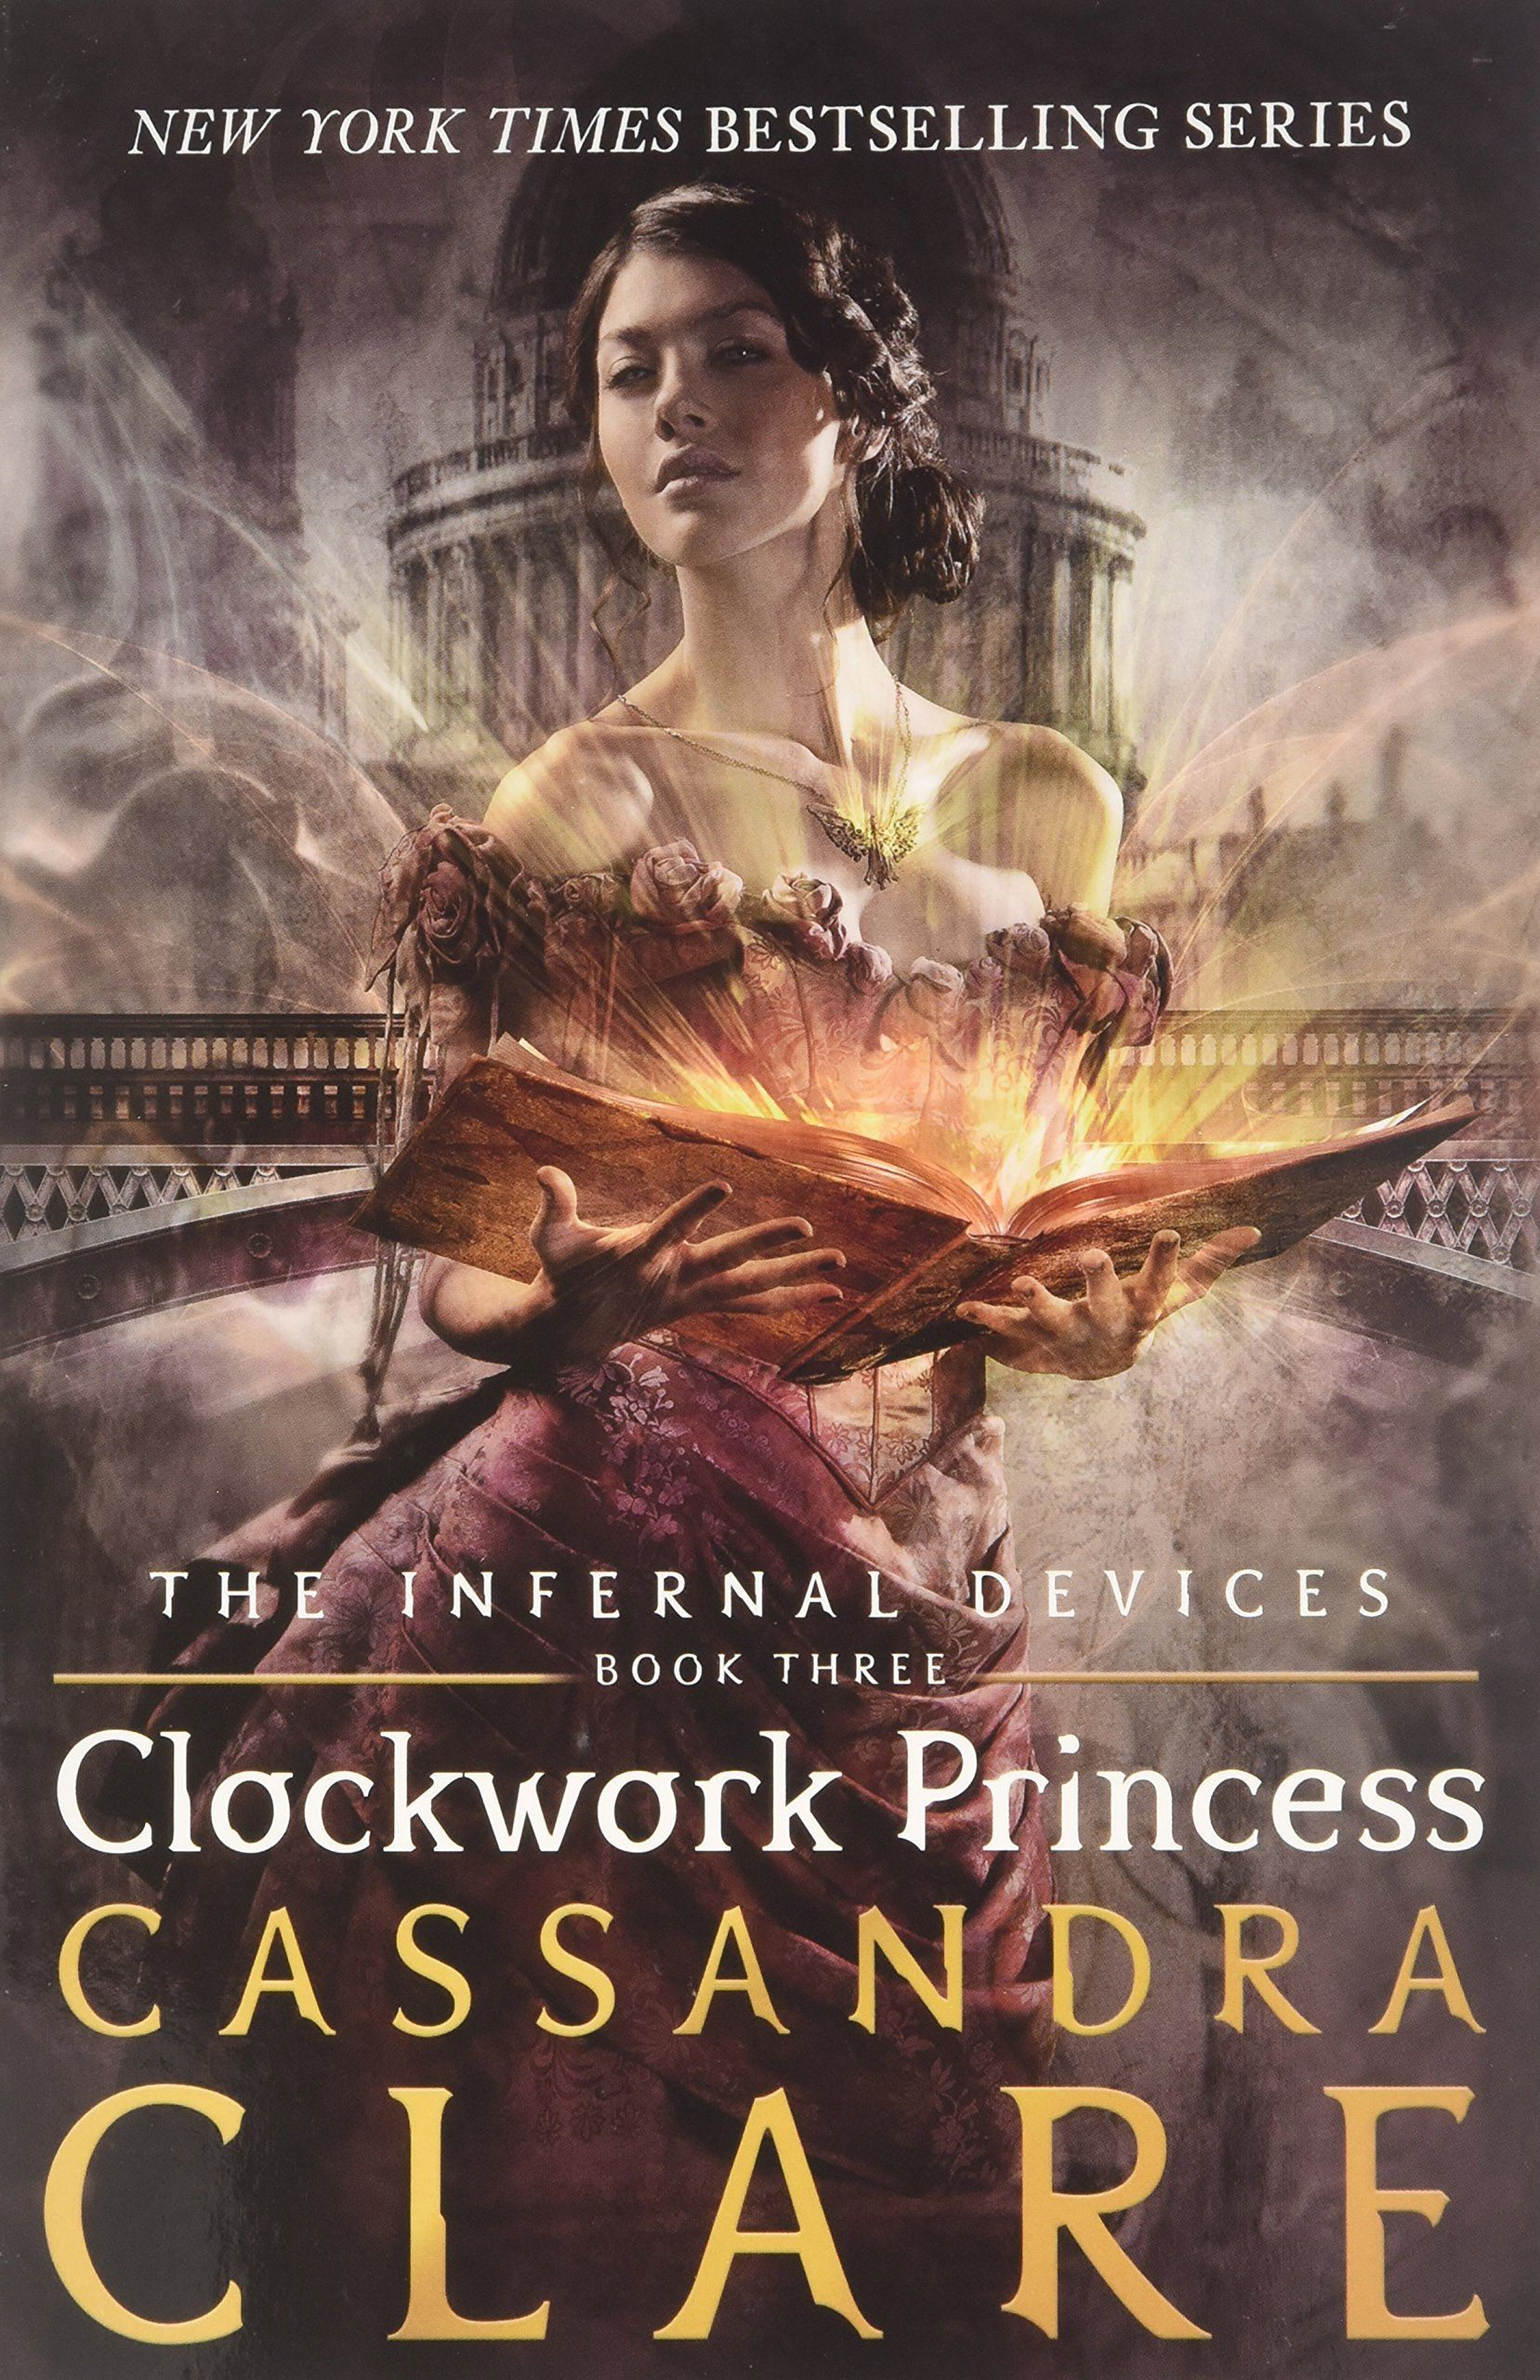 Devices free clockwork ebook the download infernal angel